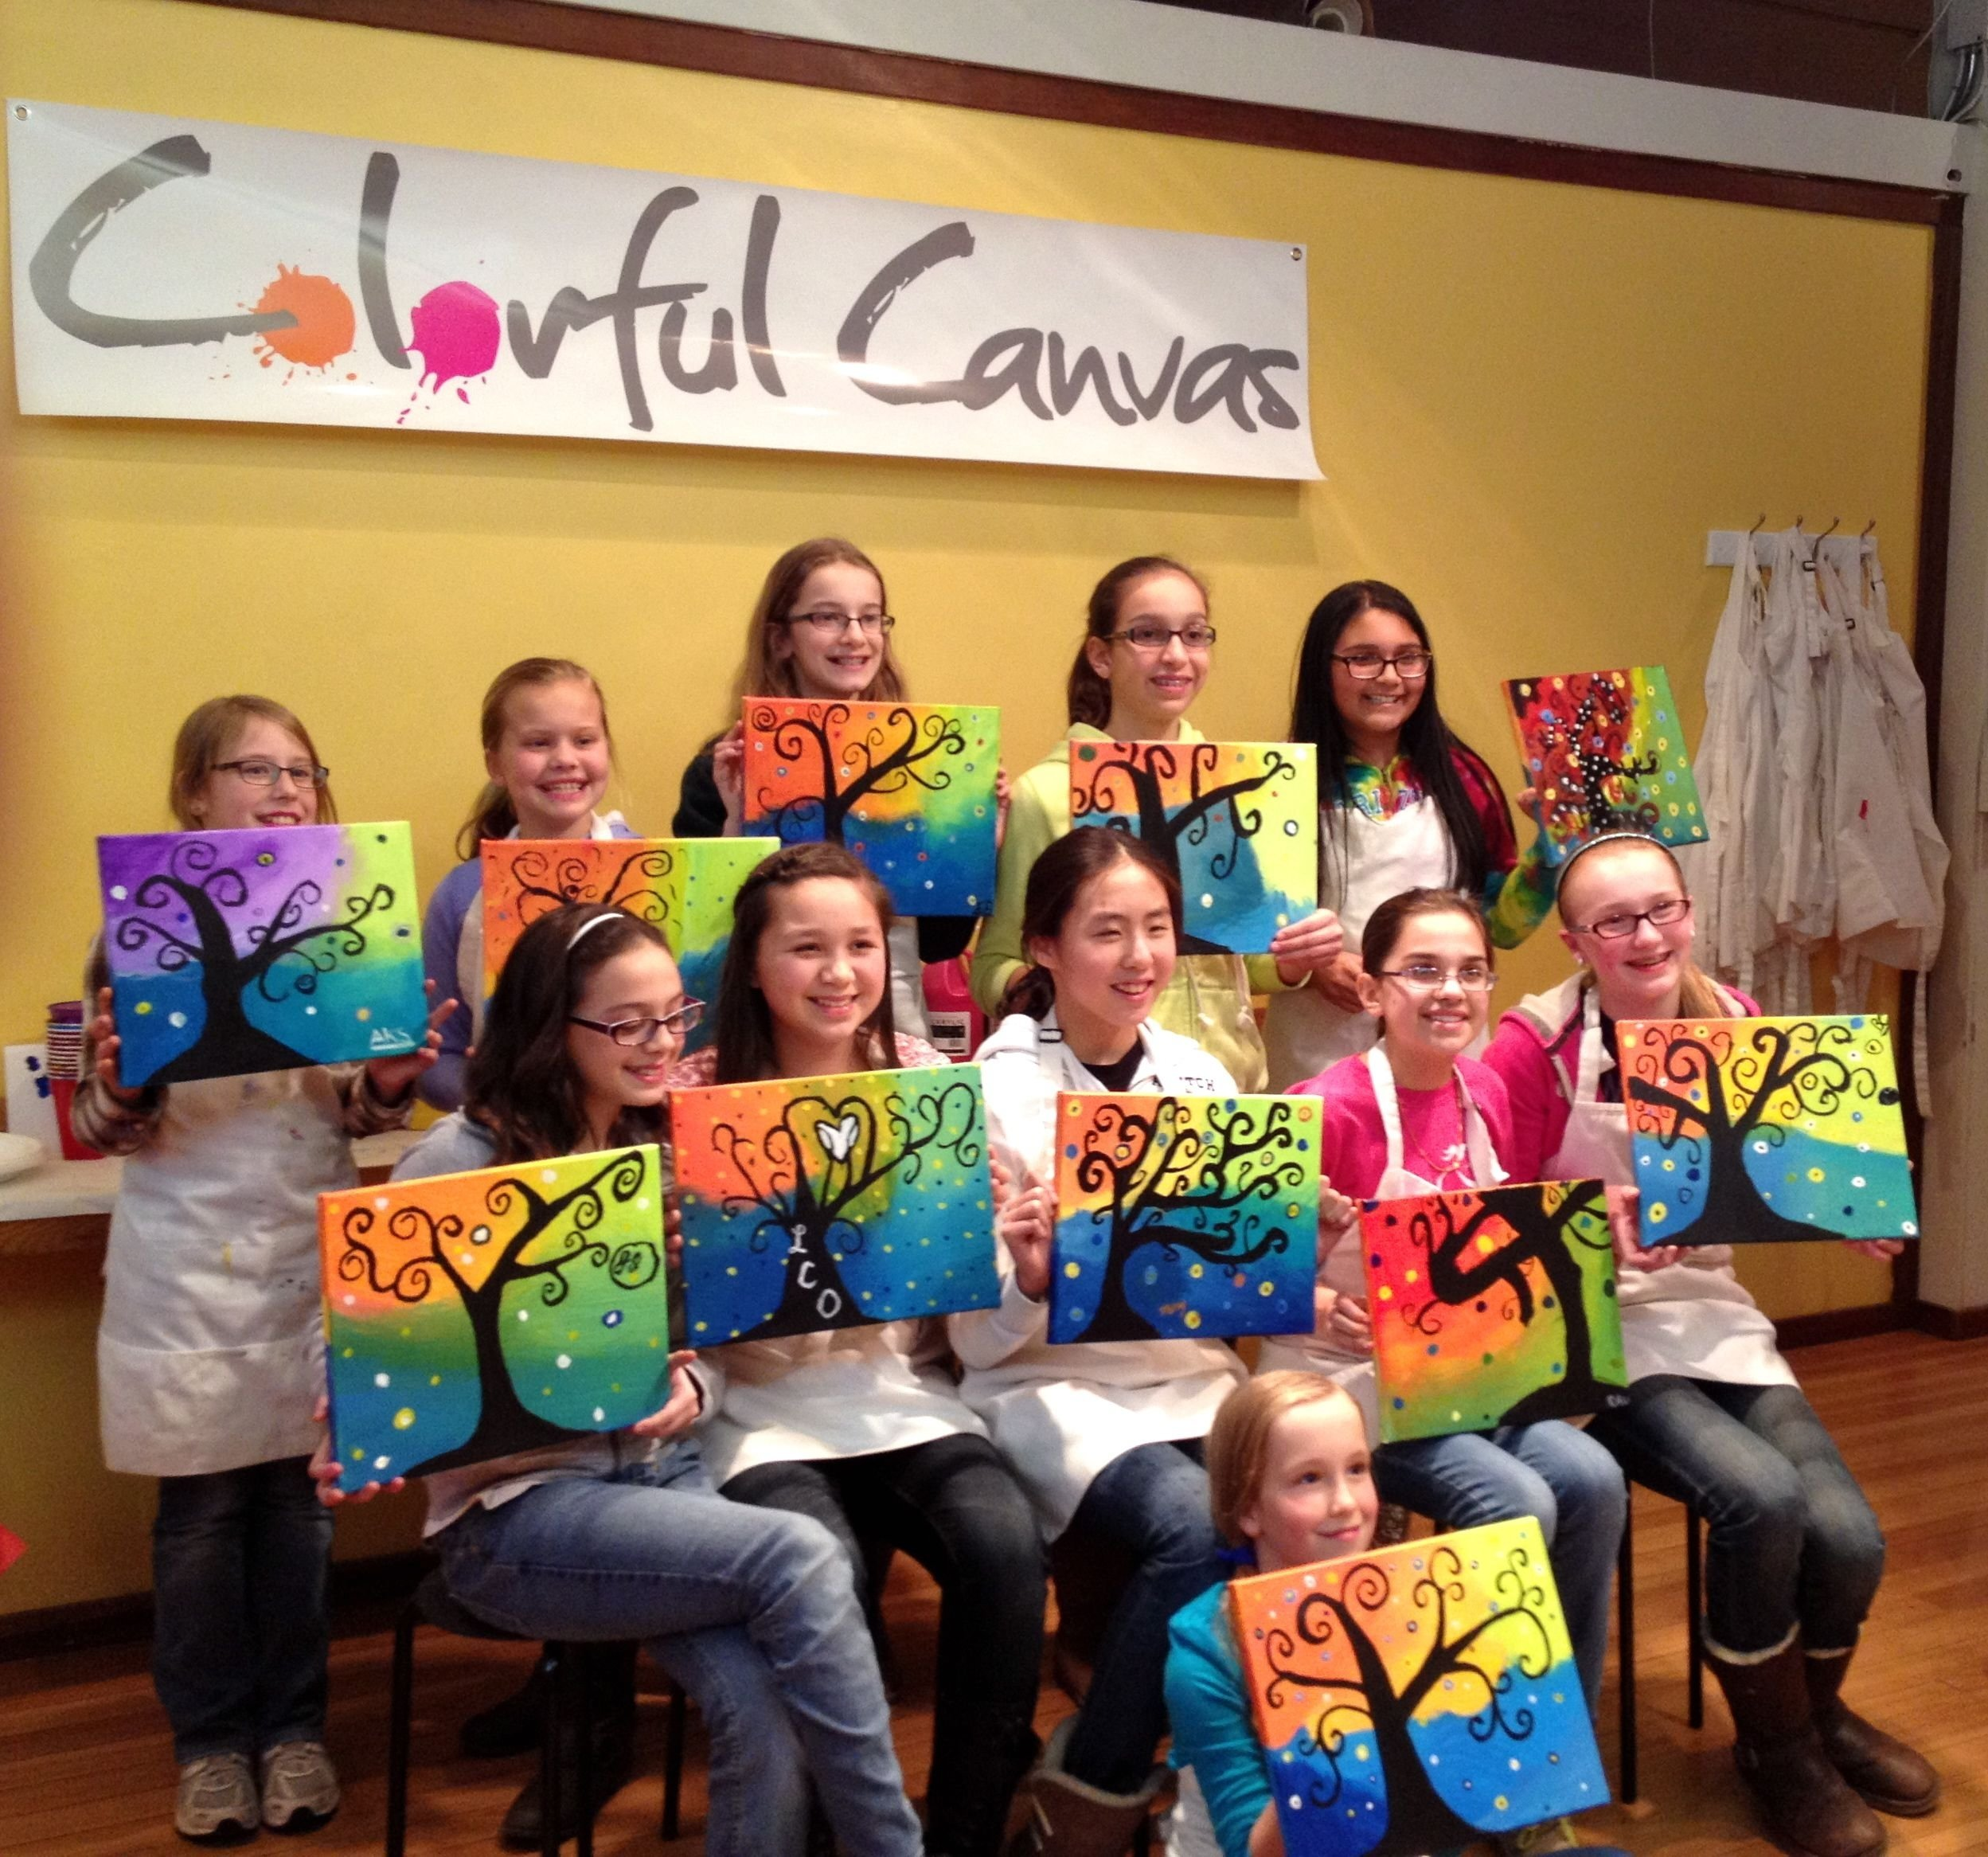 10 Fabulous Ideas For 12 Year Old Birthday Party 12 year old girls enjoyed this swirly tree painting for a friday 6